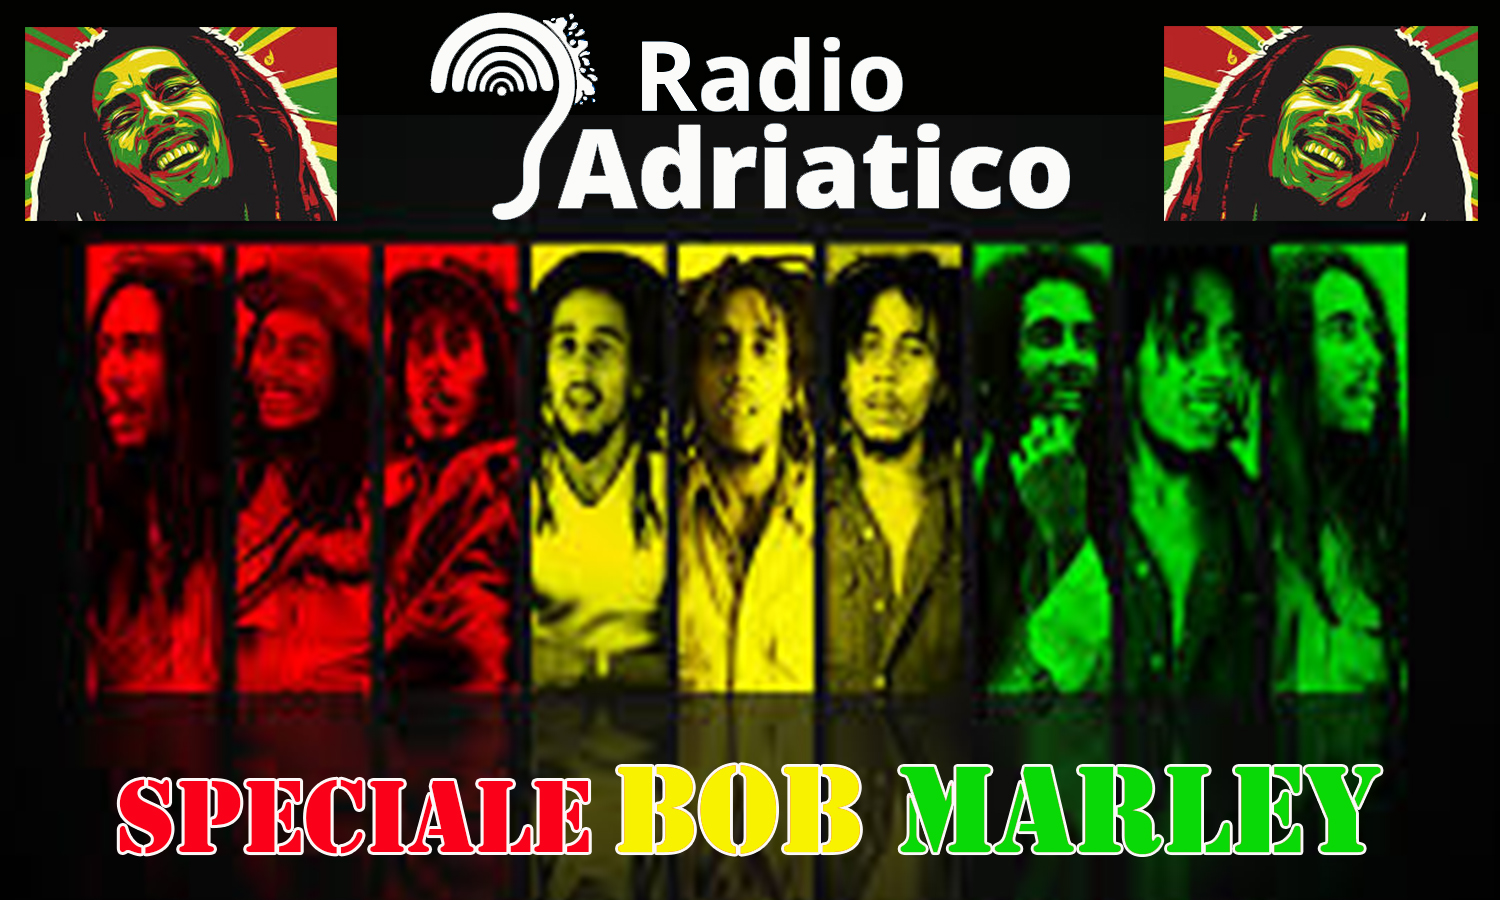 Speciale mix Bob Marley